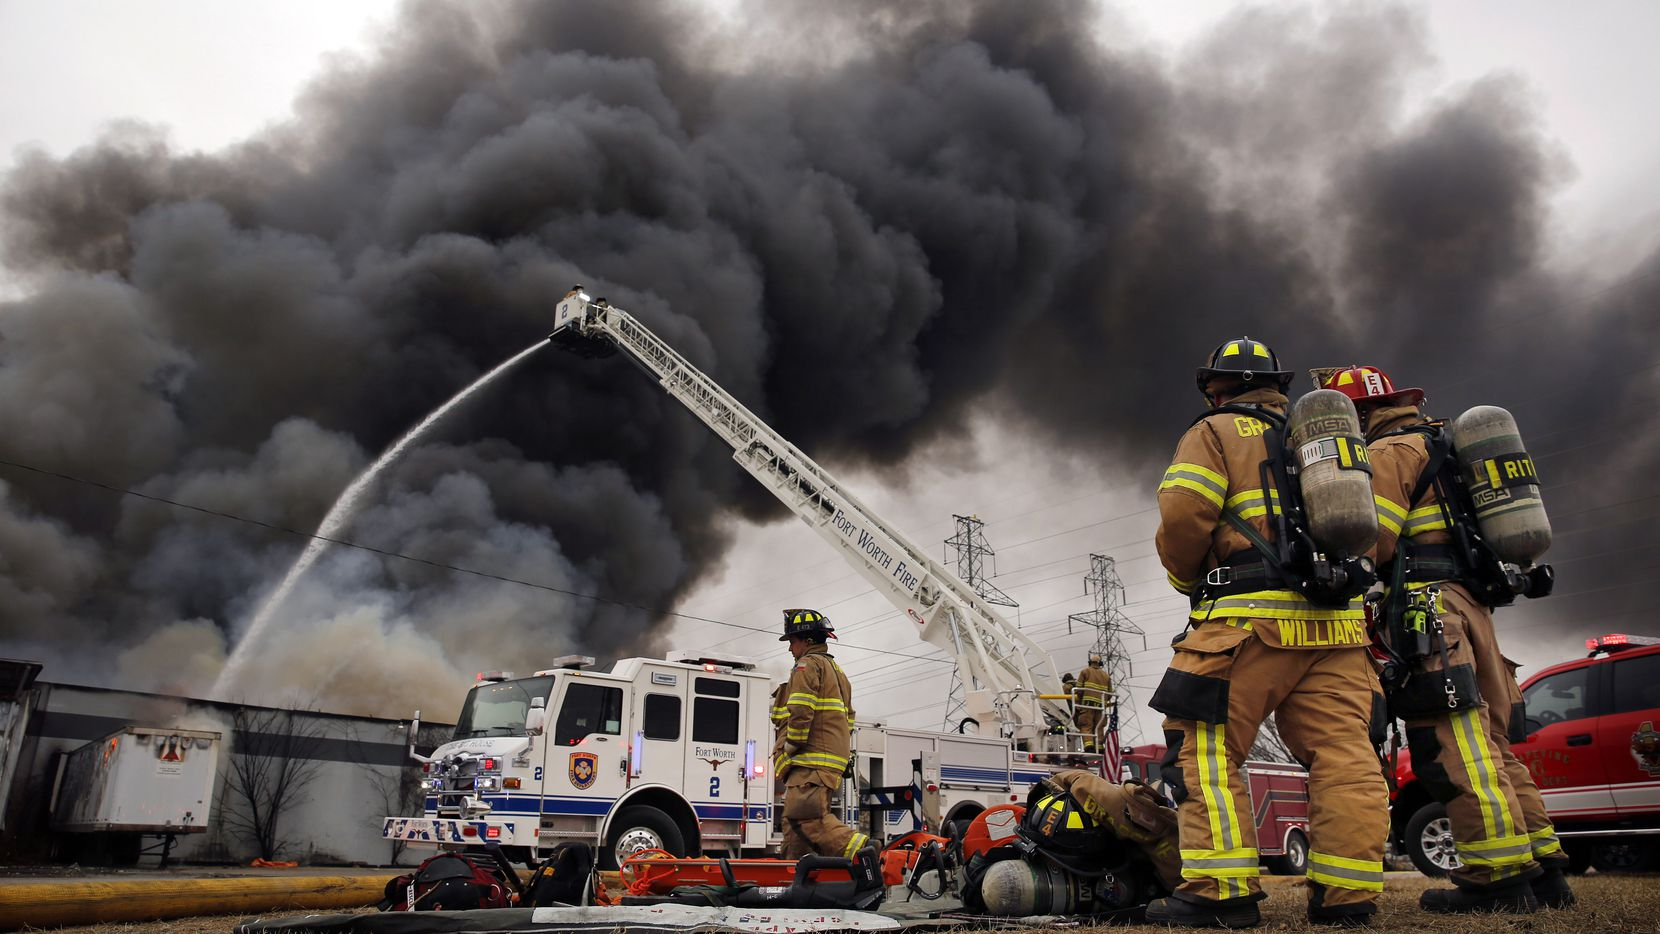 Fort Worth firefighters respond to a large 5-alarm fire at the Advanced Foam Recycling facility in Richland Hills.